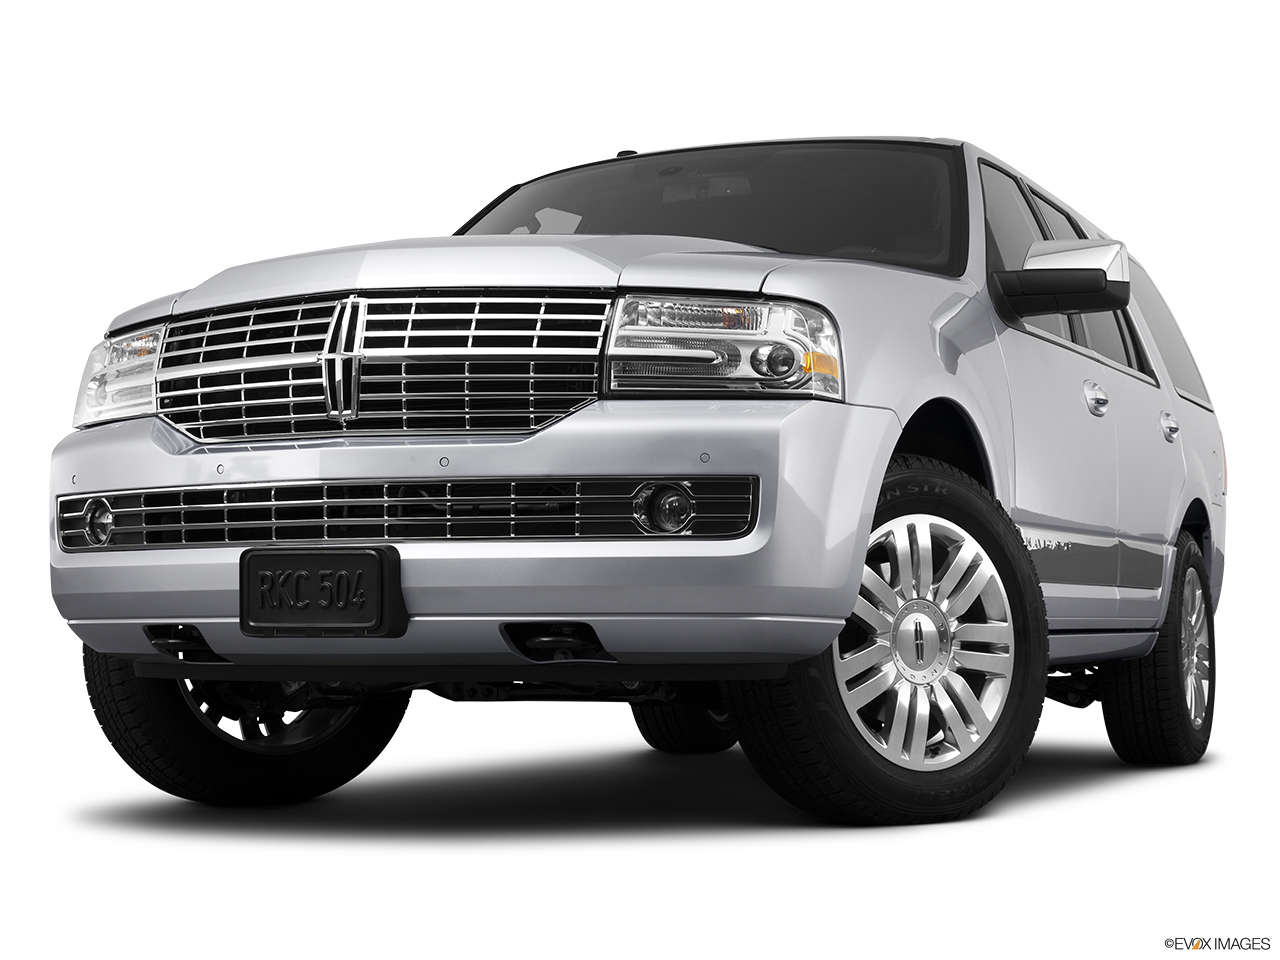 2013 Lincoln Navigator Base Front angle view, low wide perspective.